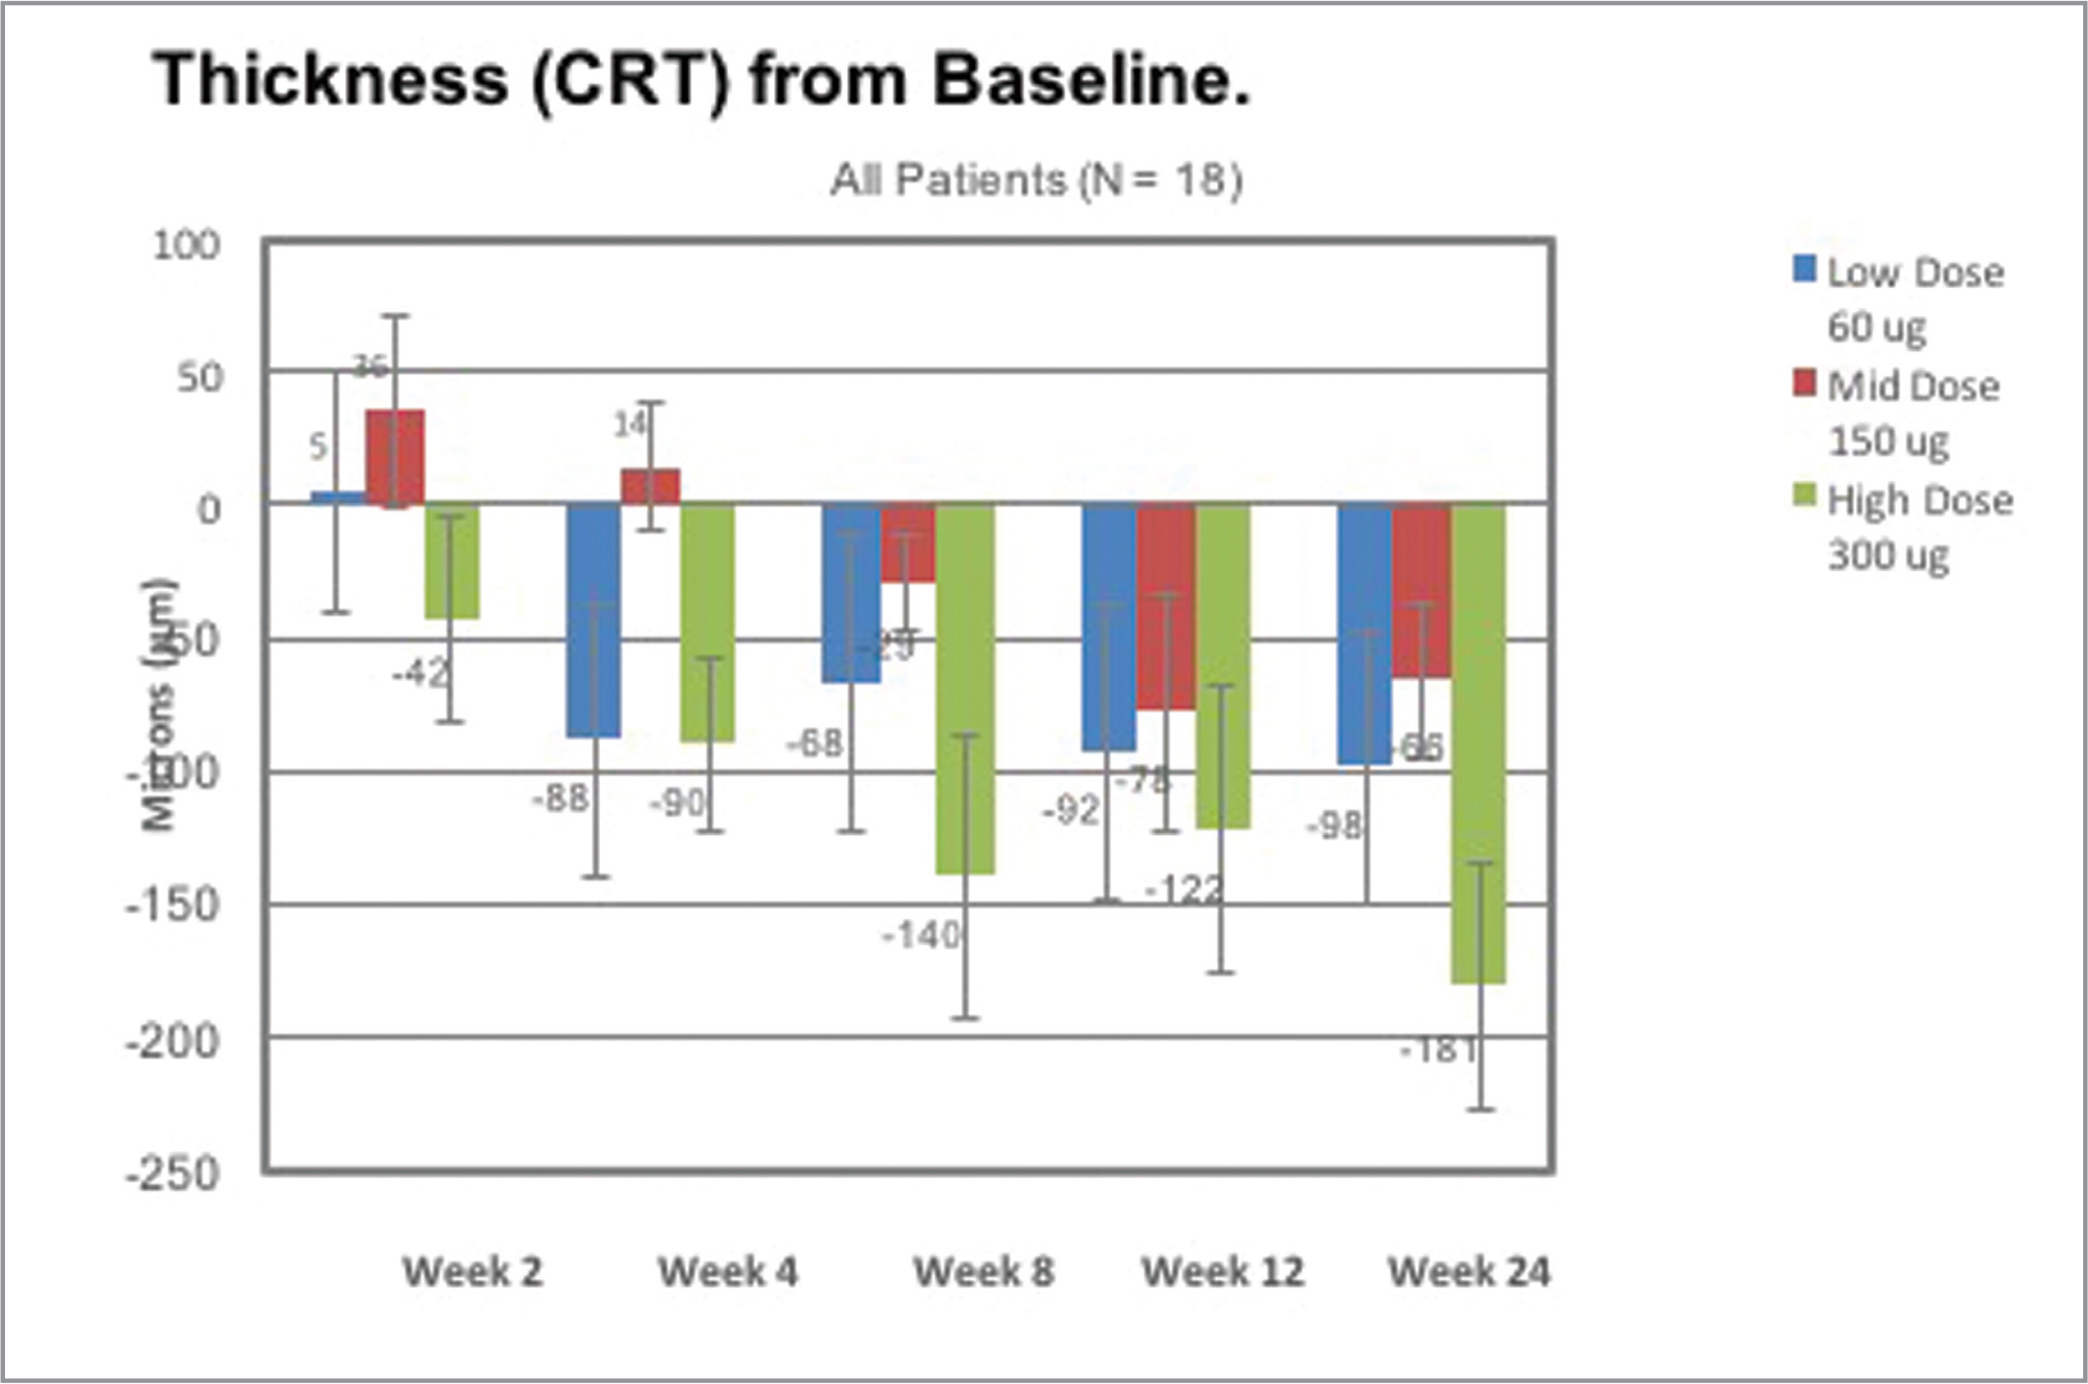 Graph of mean change in central subfield retina thickness (CRT). Data are shown for the low-dose cohort (60 μg), mid-dose cohort (150 μg), and high-dose cohort (300 μg) from weeks 2 through 24. Mean CRT in μm was determined by optical coherence tomography. Results at week 2 (in some patients up to week 4) are before any standard therapy with anti-vascular endothelial growth factor agents could be administered.